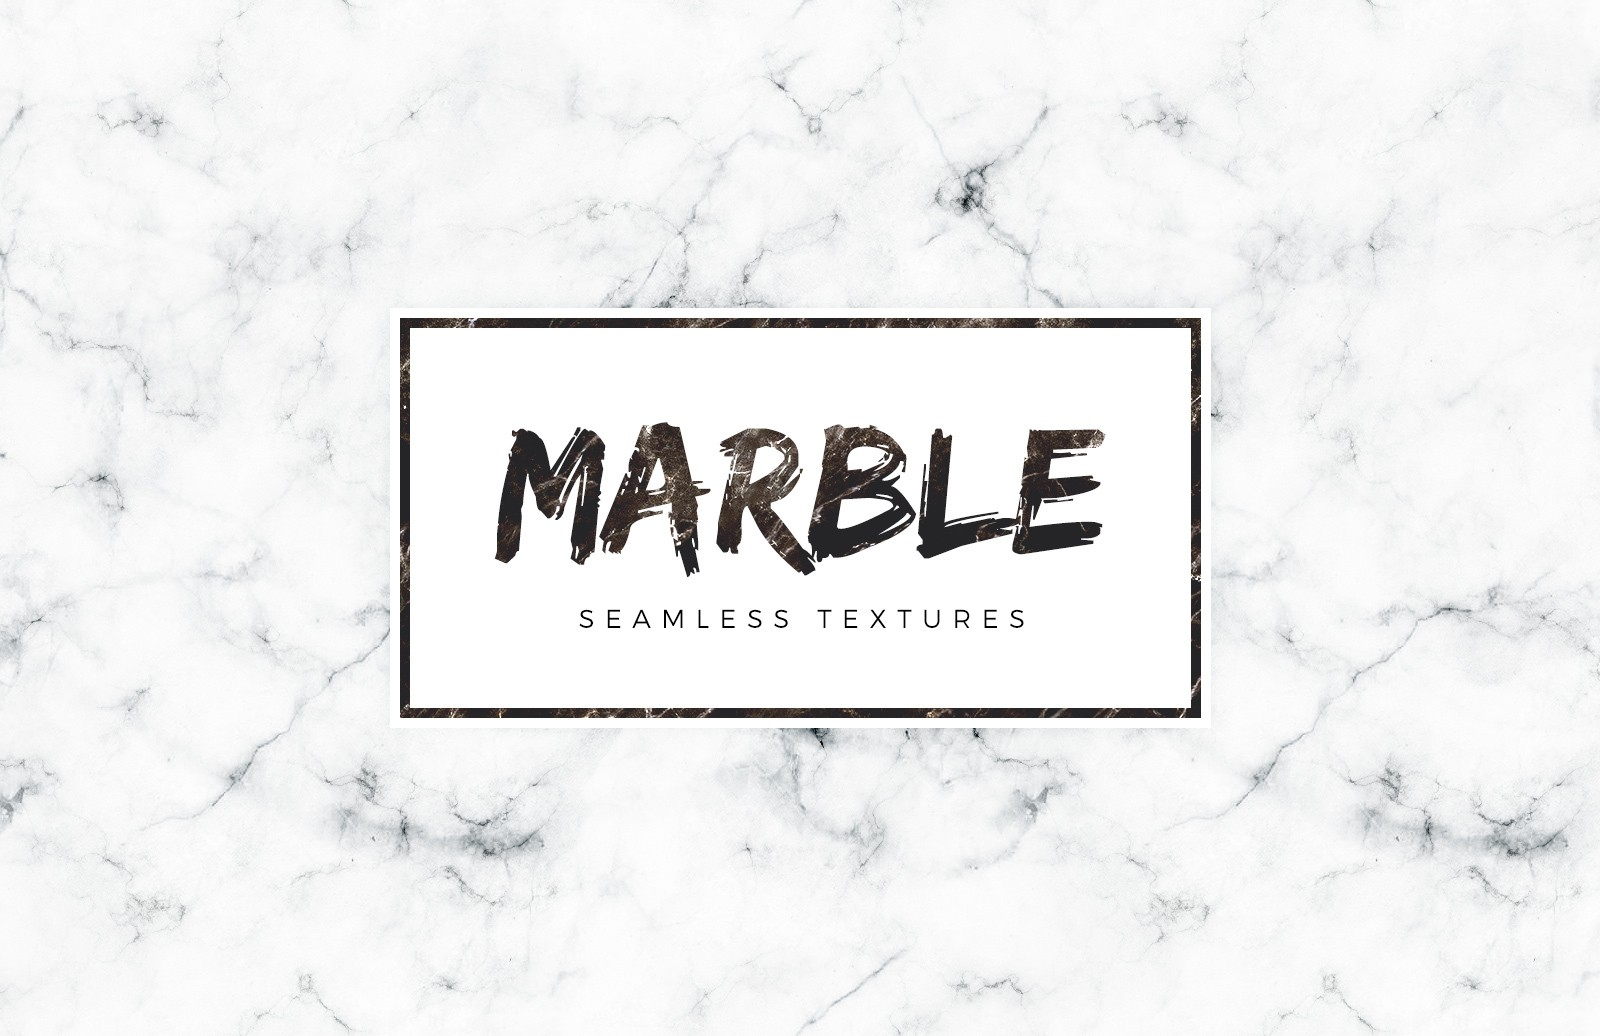 White Marble Seamless Textures Preview 1